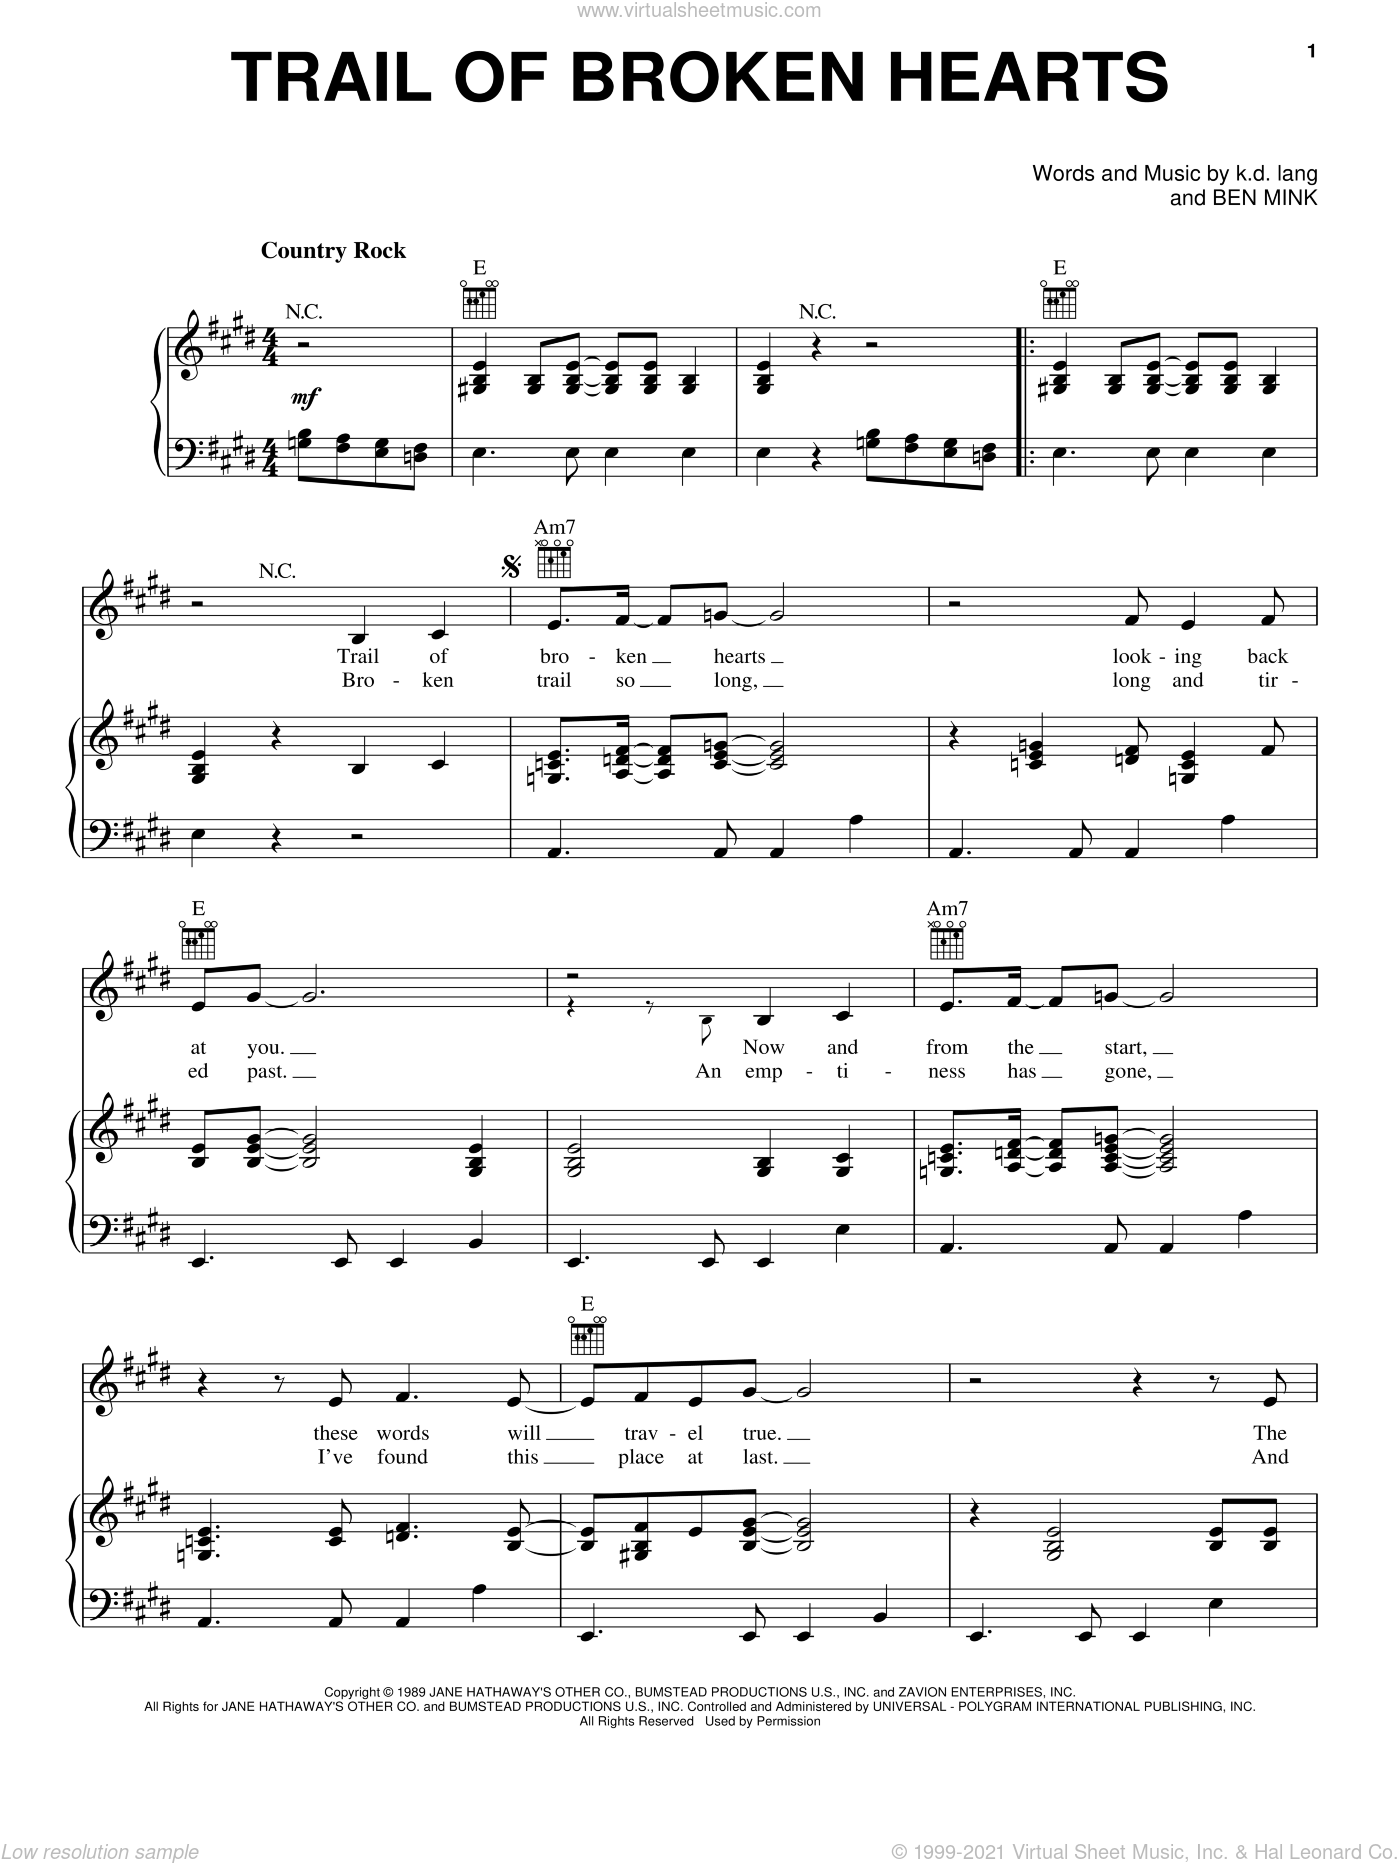 Trail Of Broken Hearts sheet music for voice, piano or guitar by K.D. Lang and Ben Mink, intermediate skill level